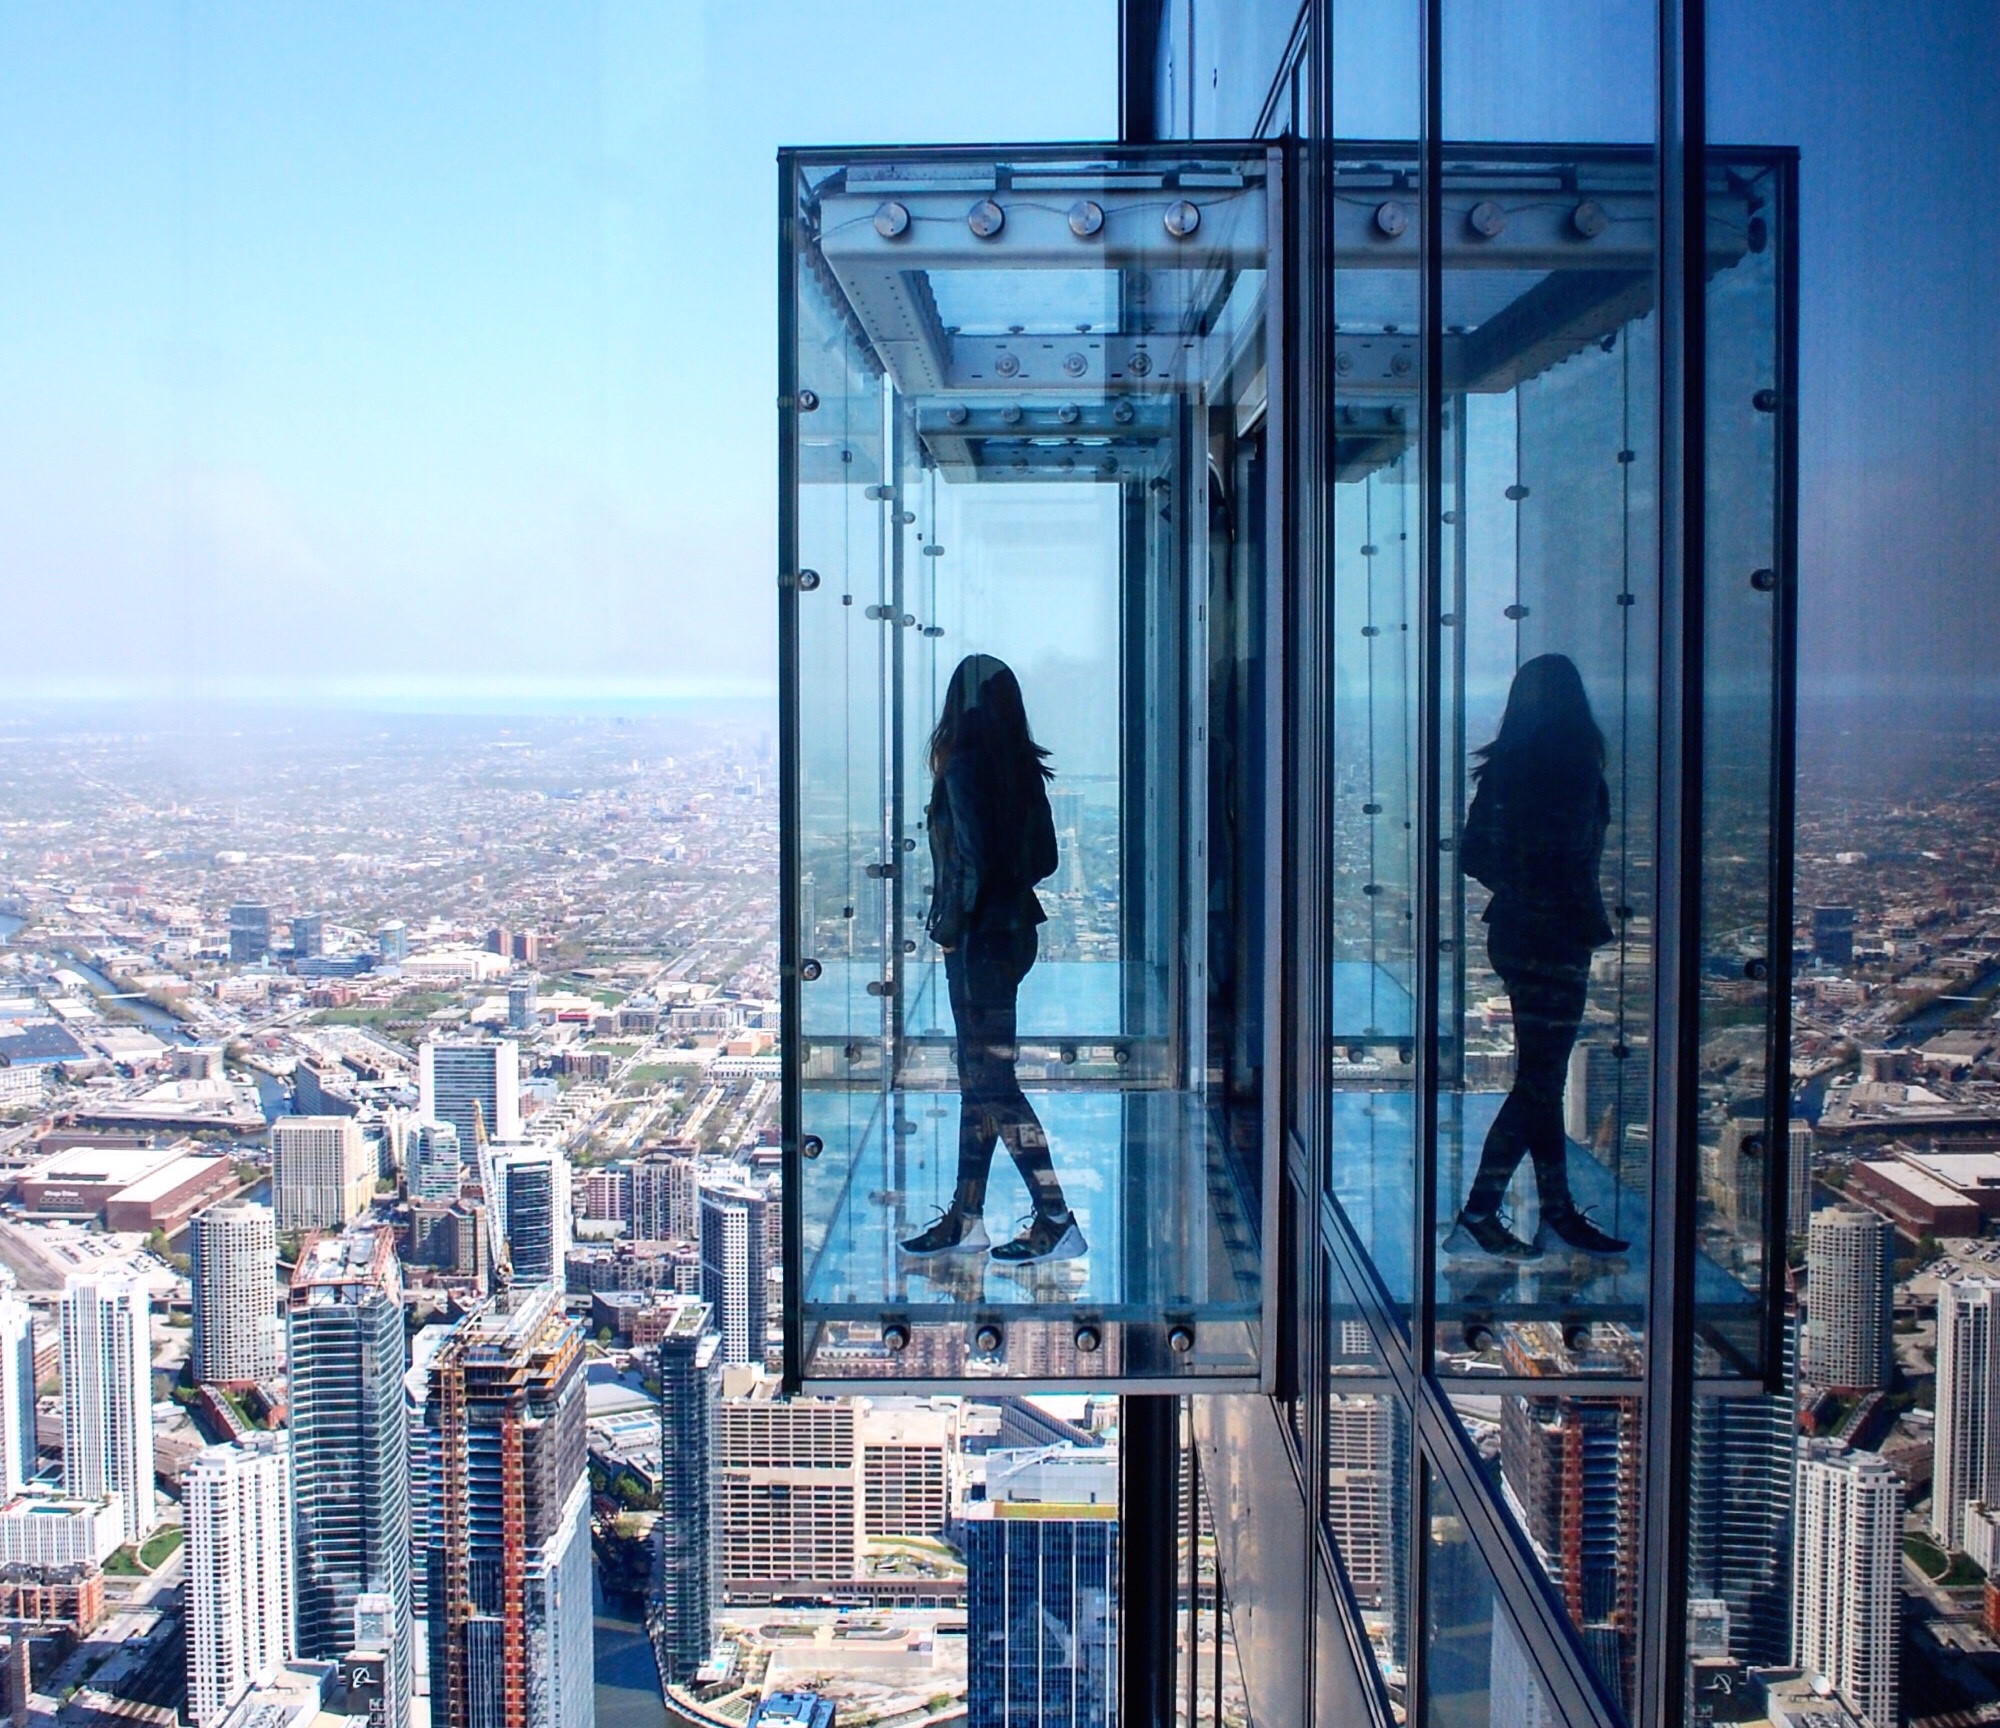 Plan a tour of Chicago's most iconic architecture with a charter bus rental.